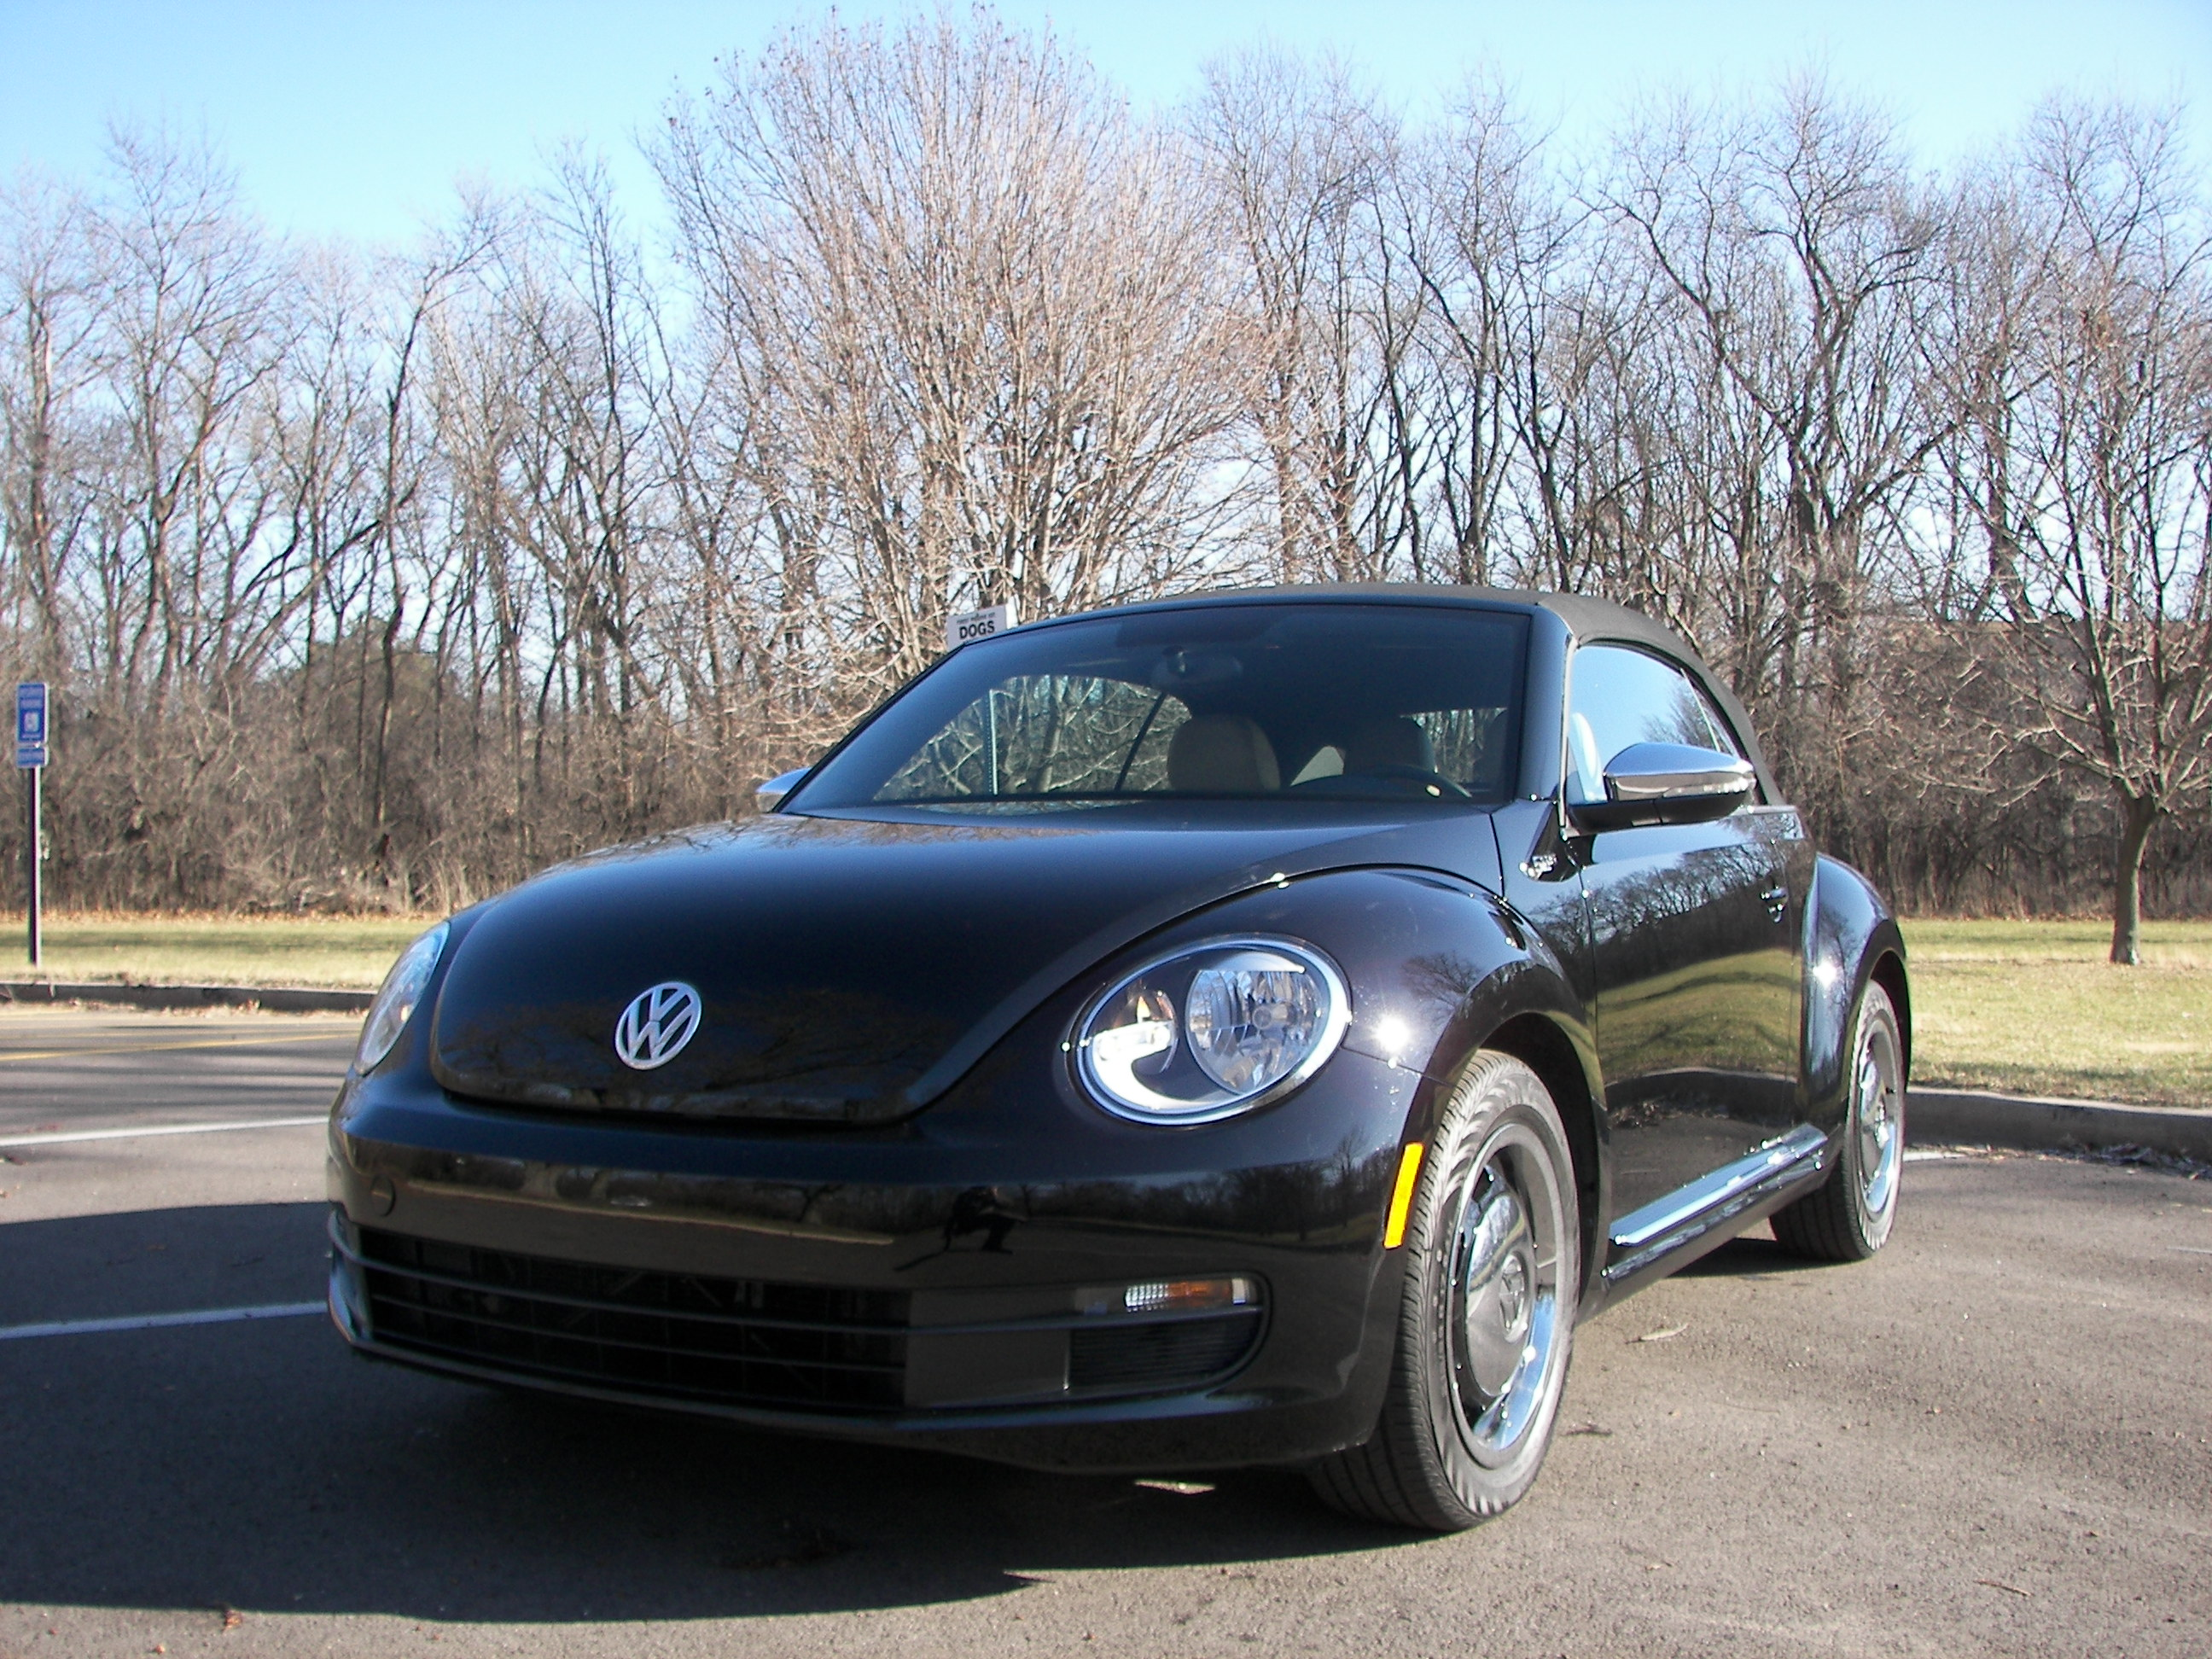 updates car photo hardtop s beetle original mini driver convertible photos and news volkswagen stylistic get info